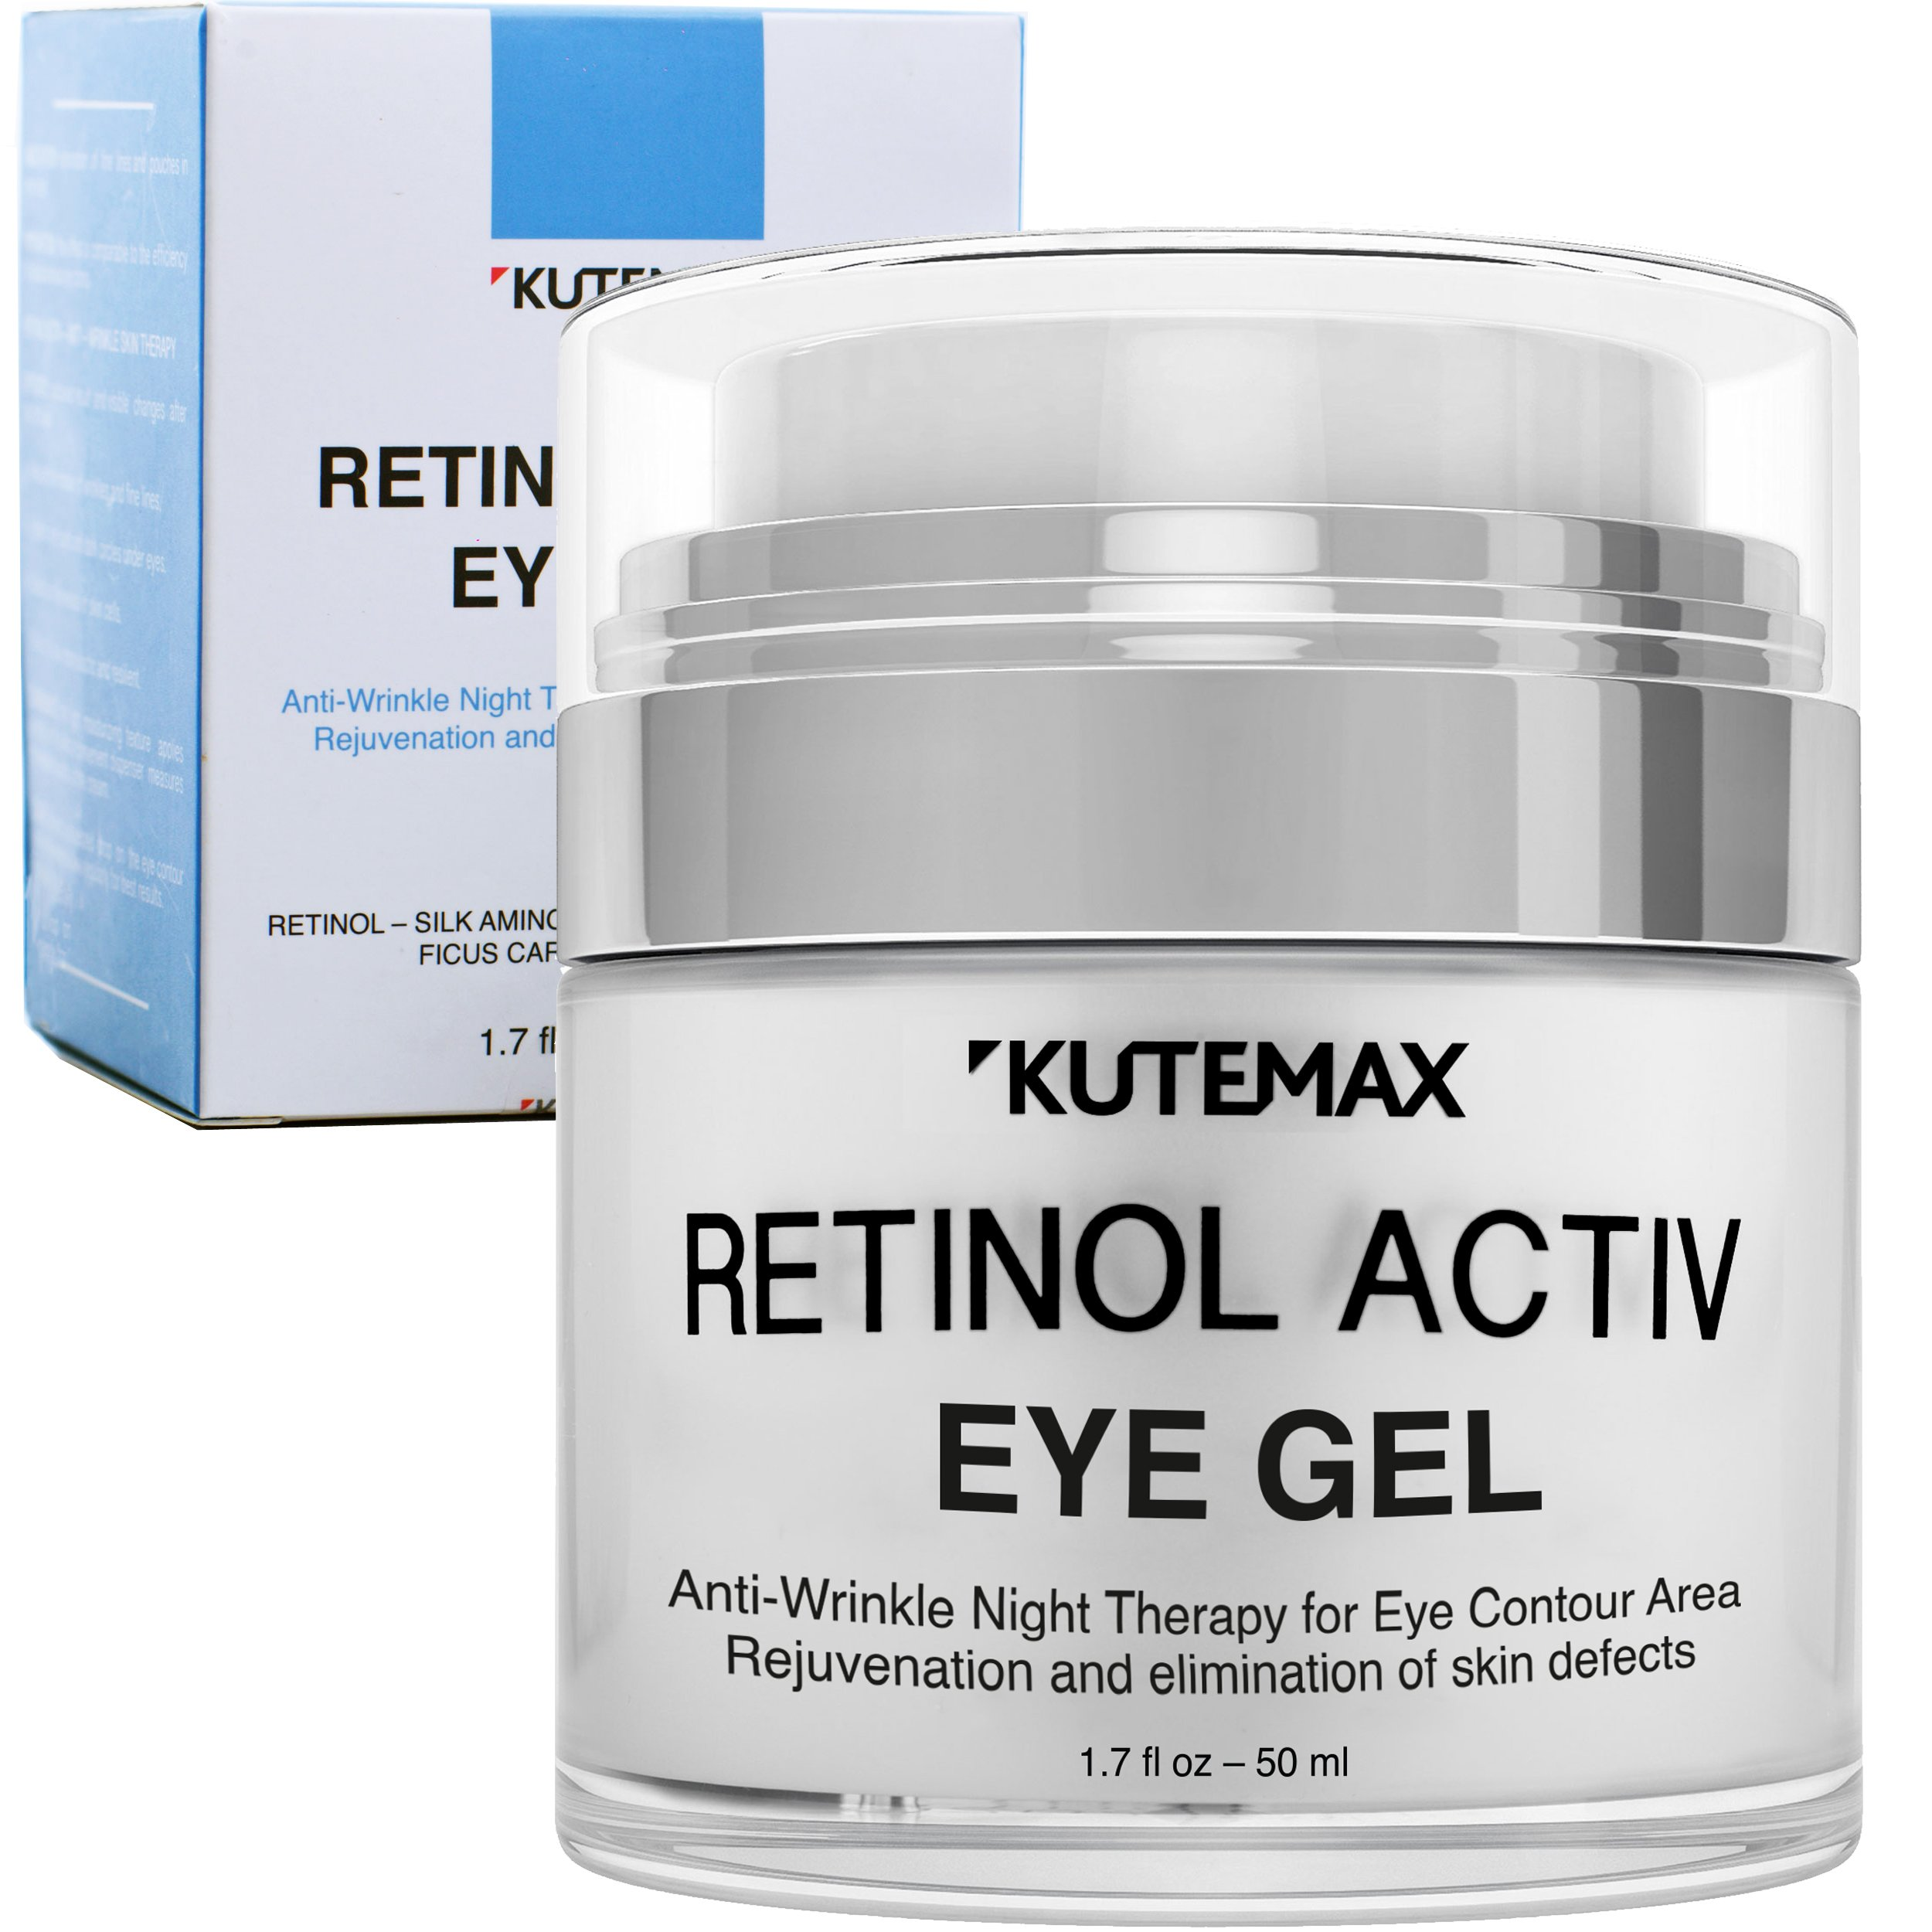 Retinol Under Eye Gel - Combo Eye Cream for Dark Circles, Eye Puffiness, Crows Feet, Eye Bags, Fine Lines – Organic Anti-Aging Wrinkle Cream – 1.7 fl oz / 50 ml